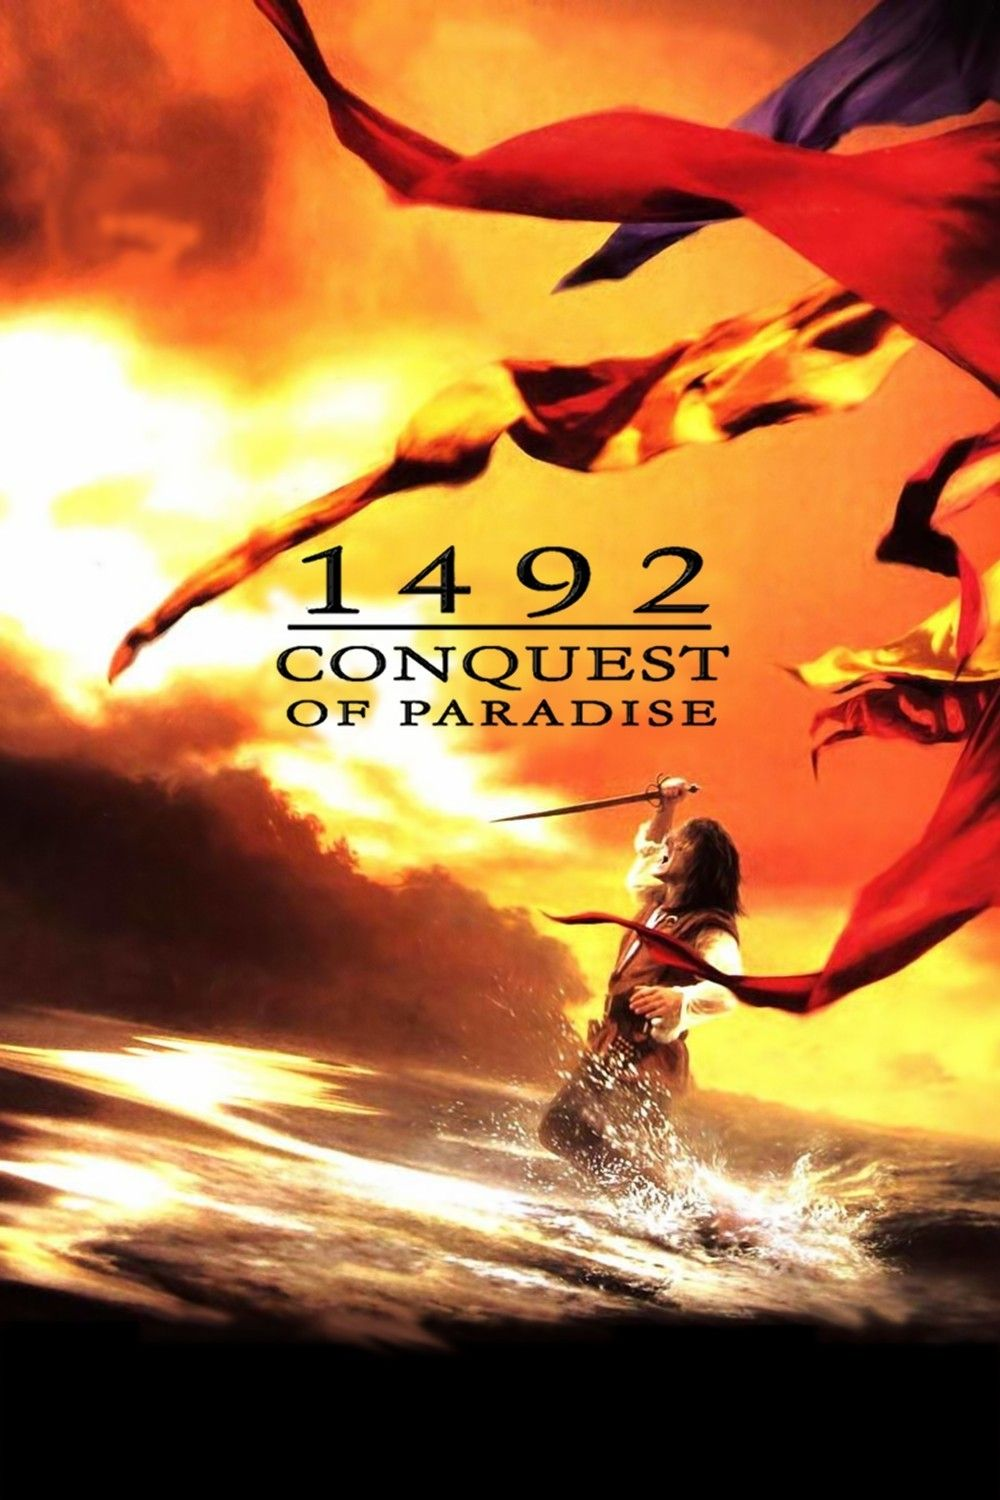 click image to watch 1492_Conquest of Paradise (1992)